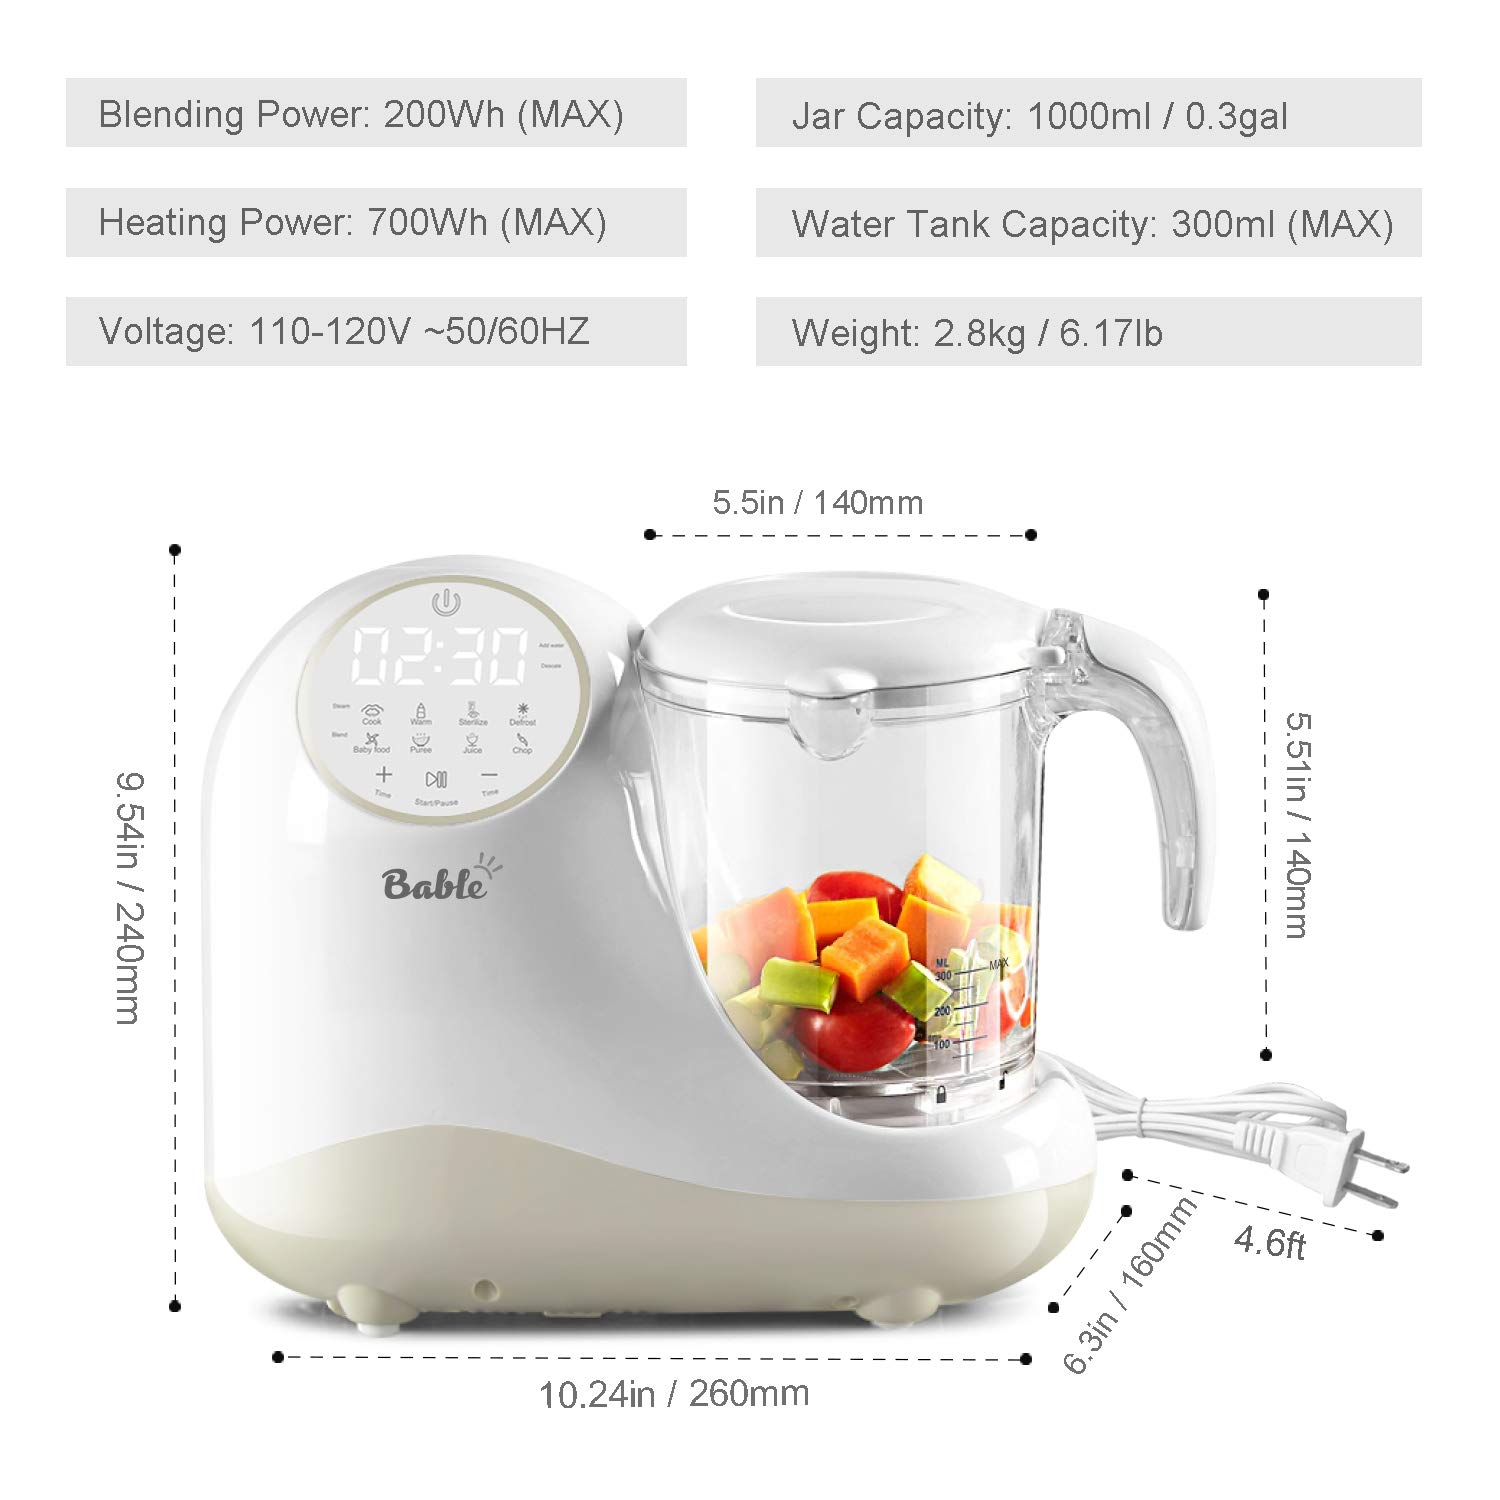 Baby Food Maker for Infants and Toddlers, Bable All in 1 Food Processor Mills Machine with Steam, Blend, Chop, Reheater, Grinder and Auto Cleaning, Touch Control Panel, Auto Shut-Off by BABLE (Image #8)